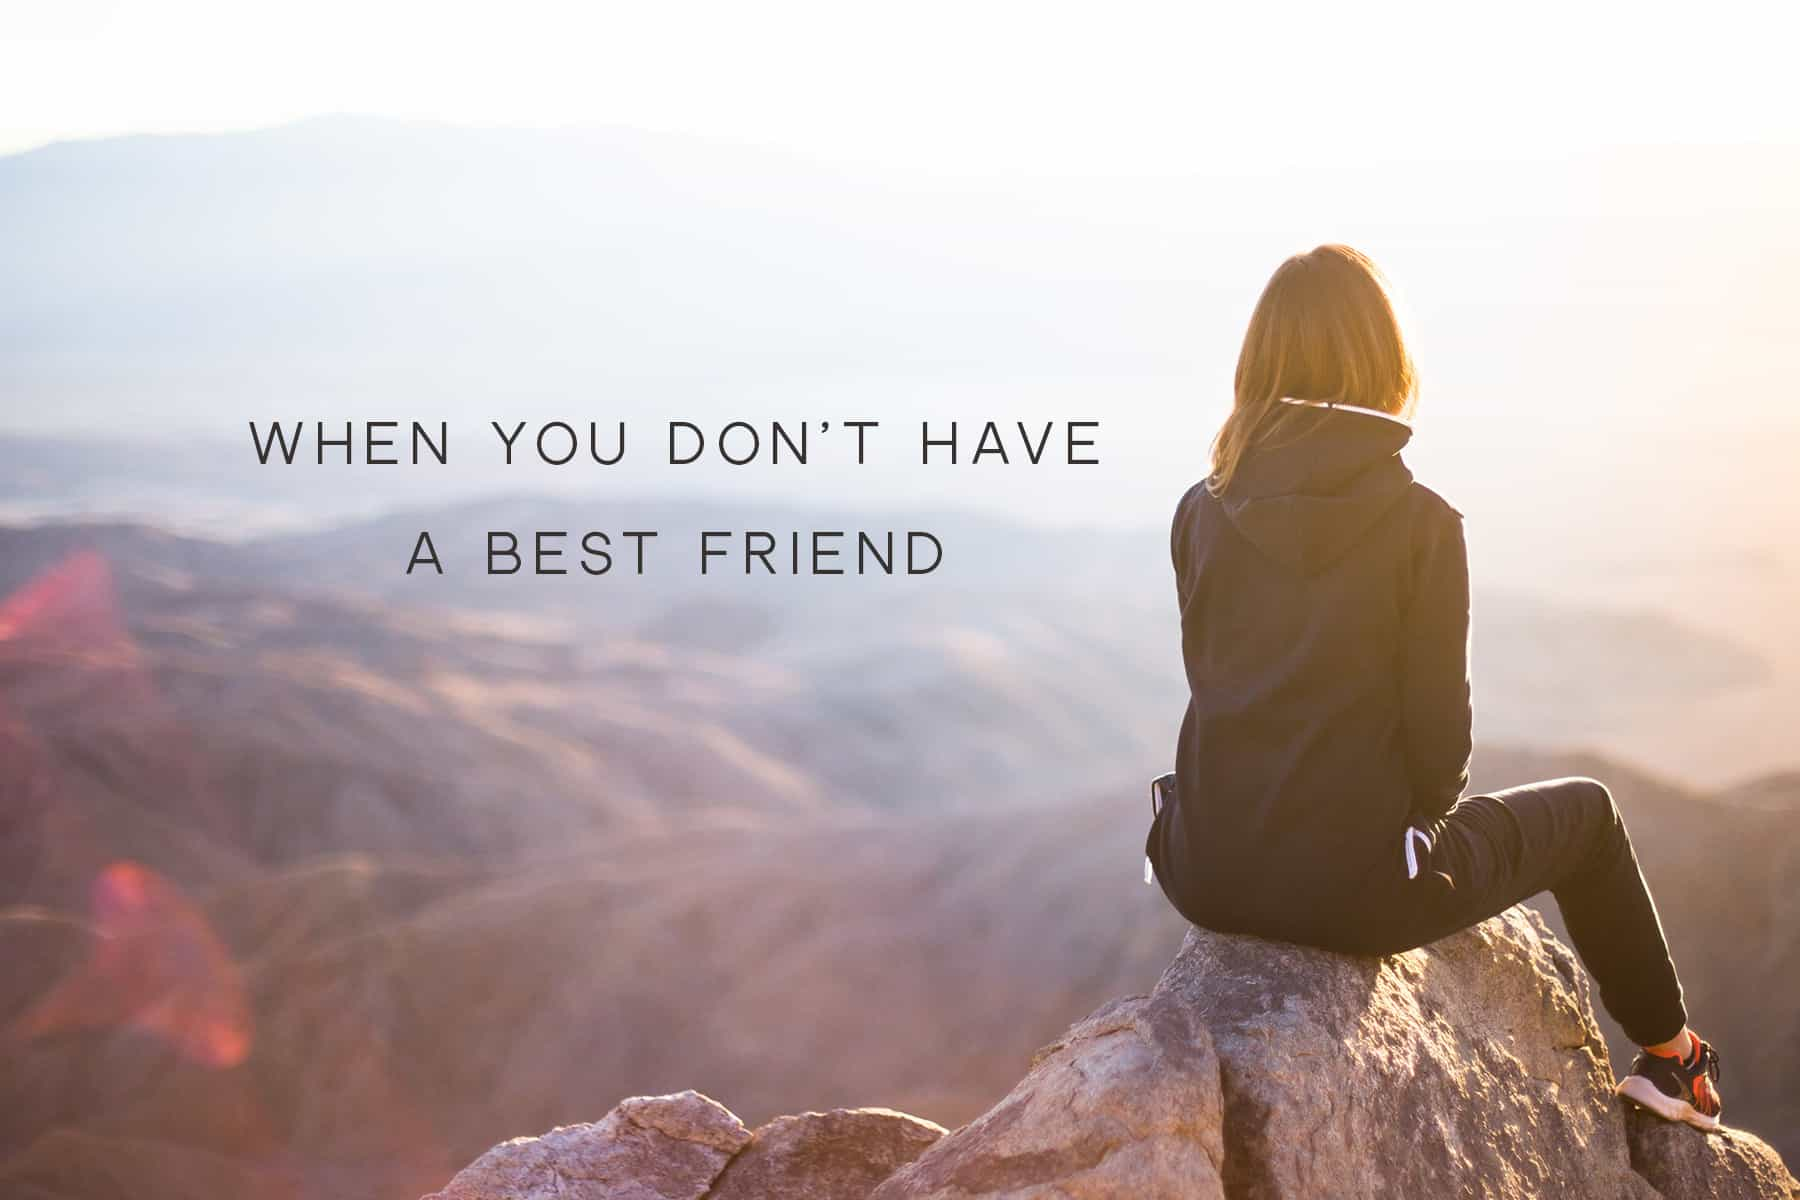 without a best friend